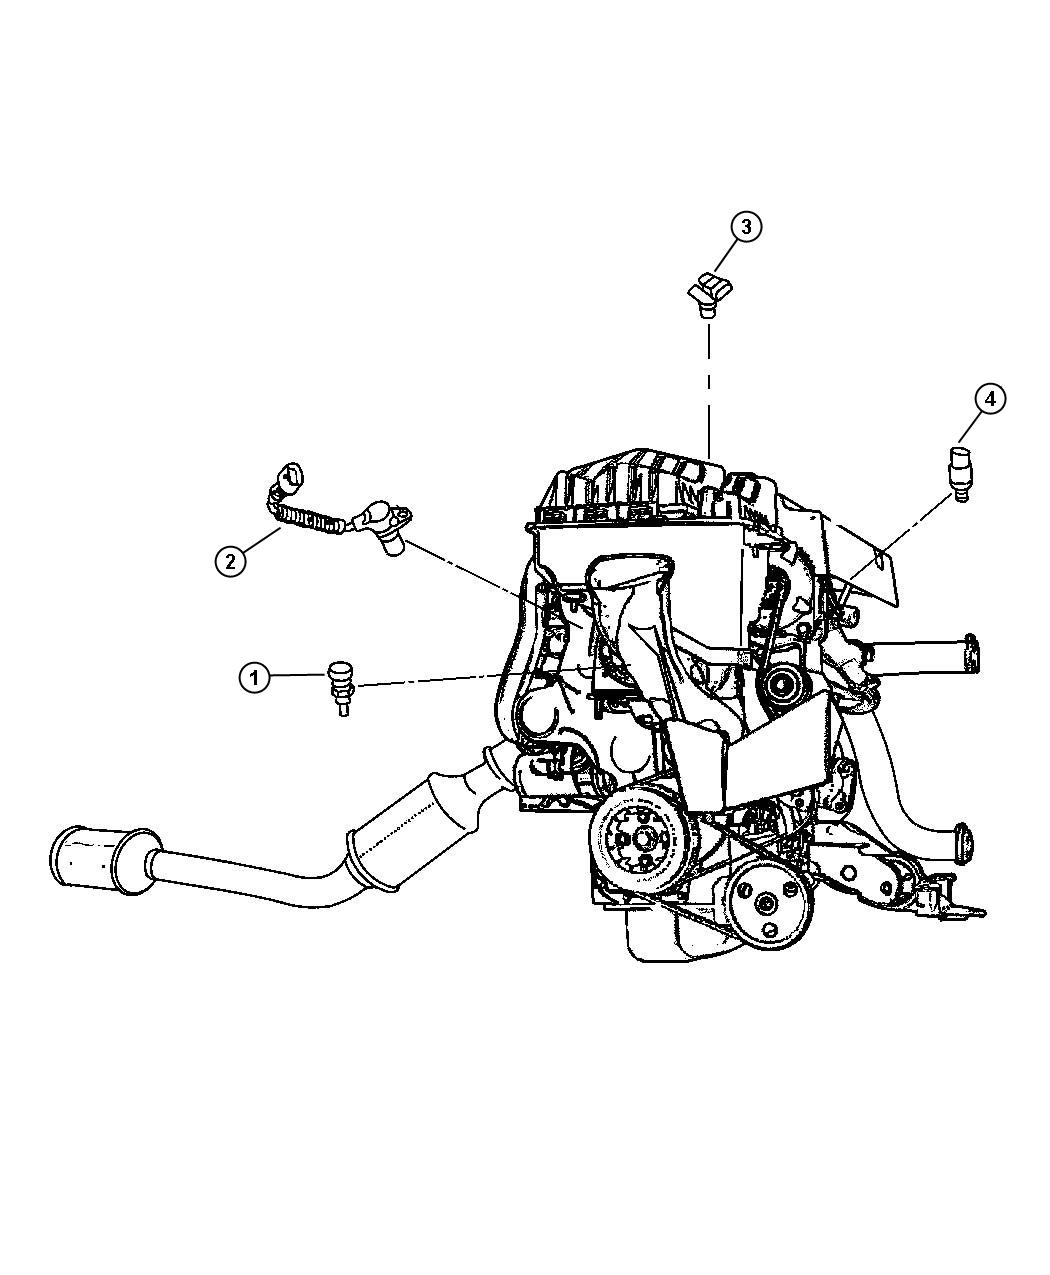 Buick V6 Engine Diagram For Sensors Furthermore